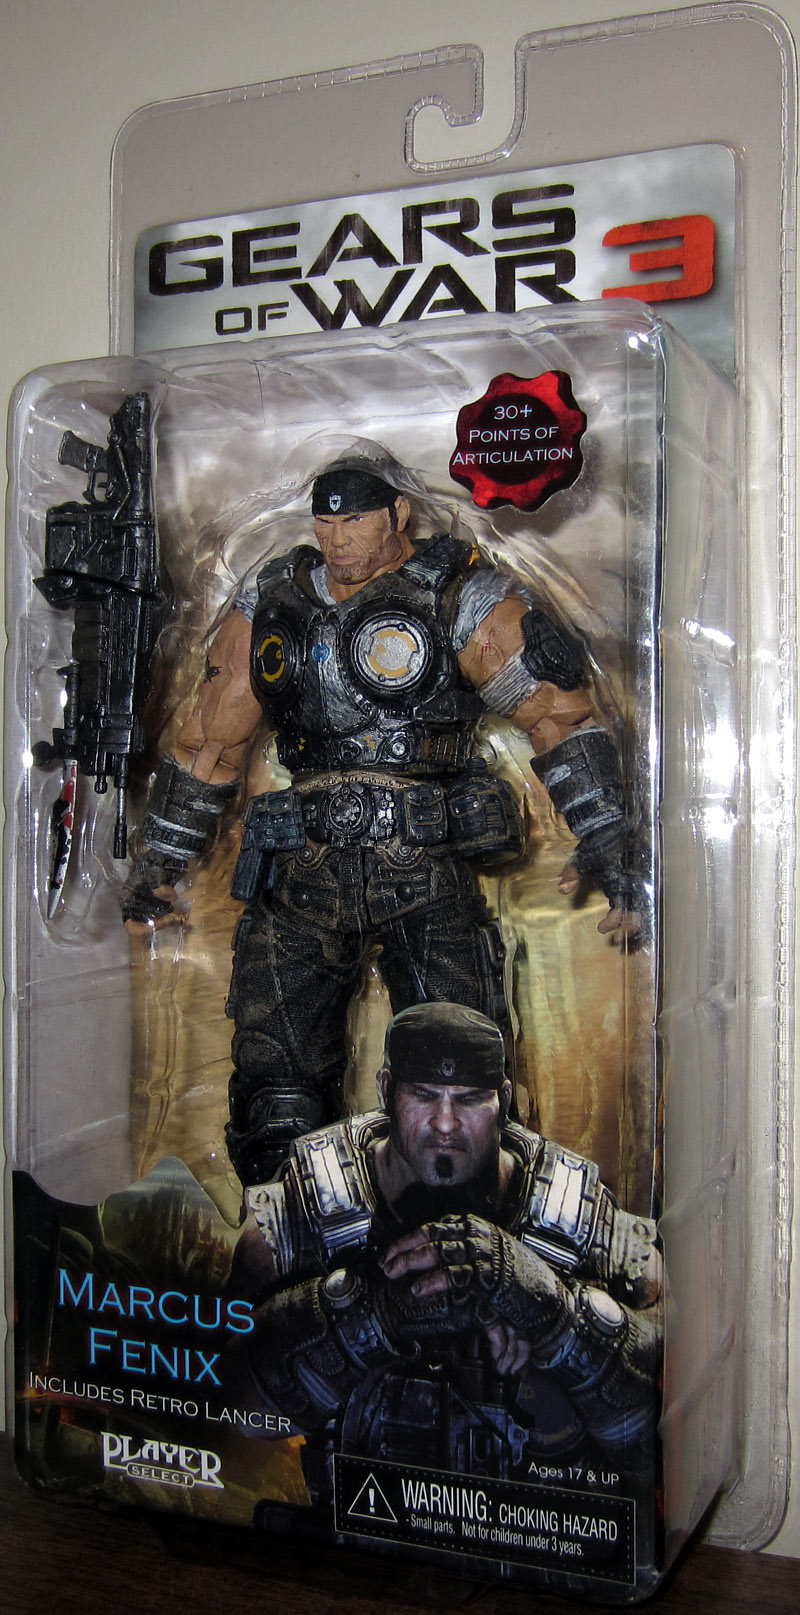 Marcus Fenix (Gears of War 3)